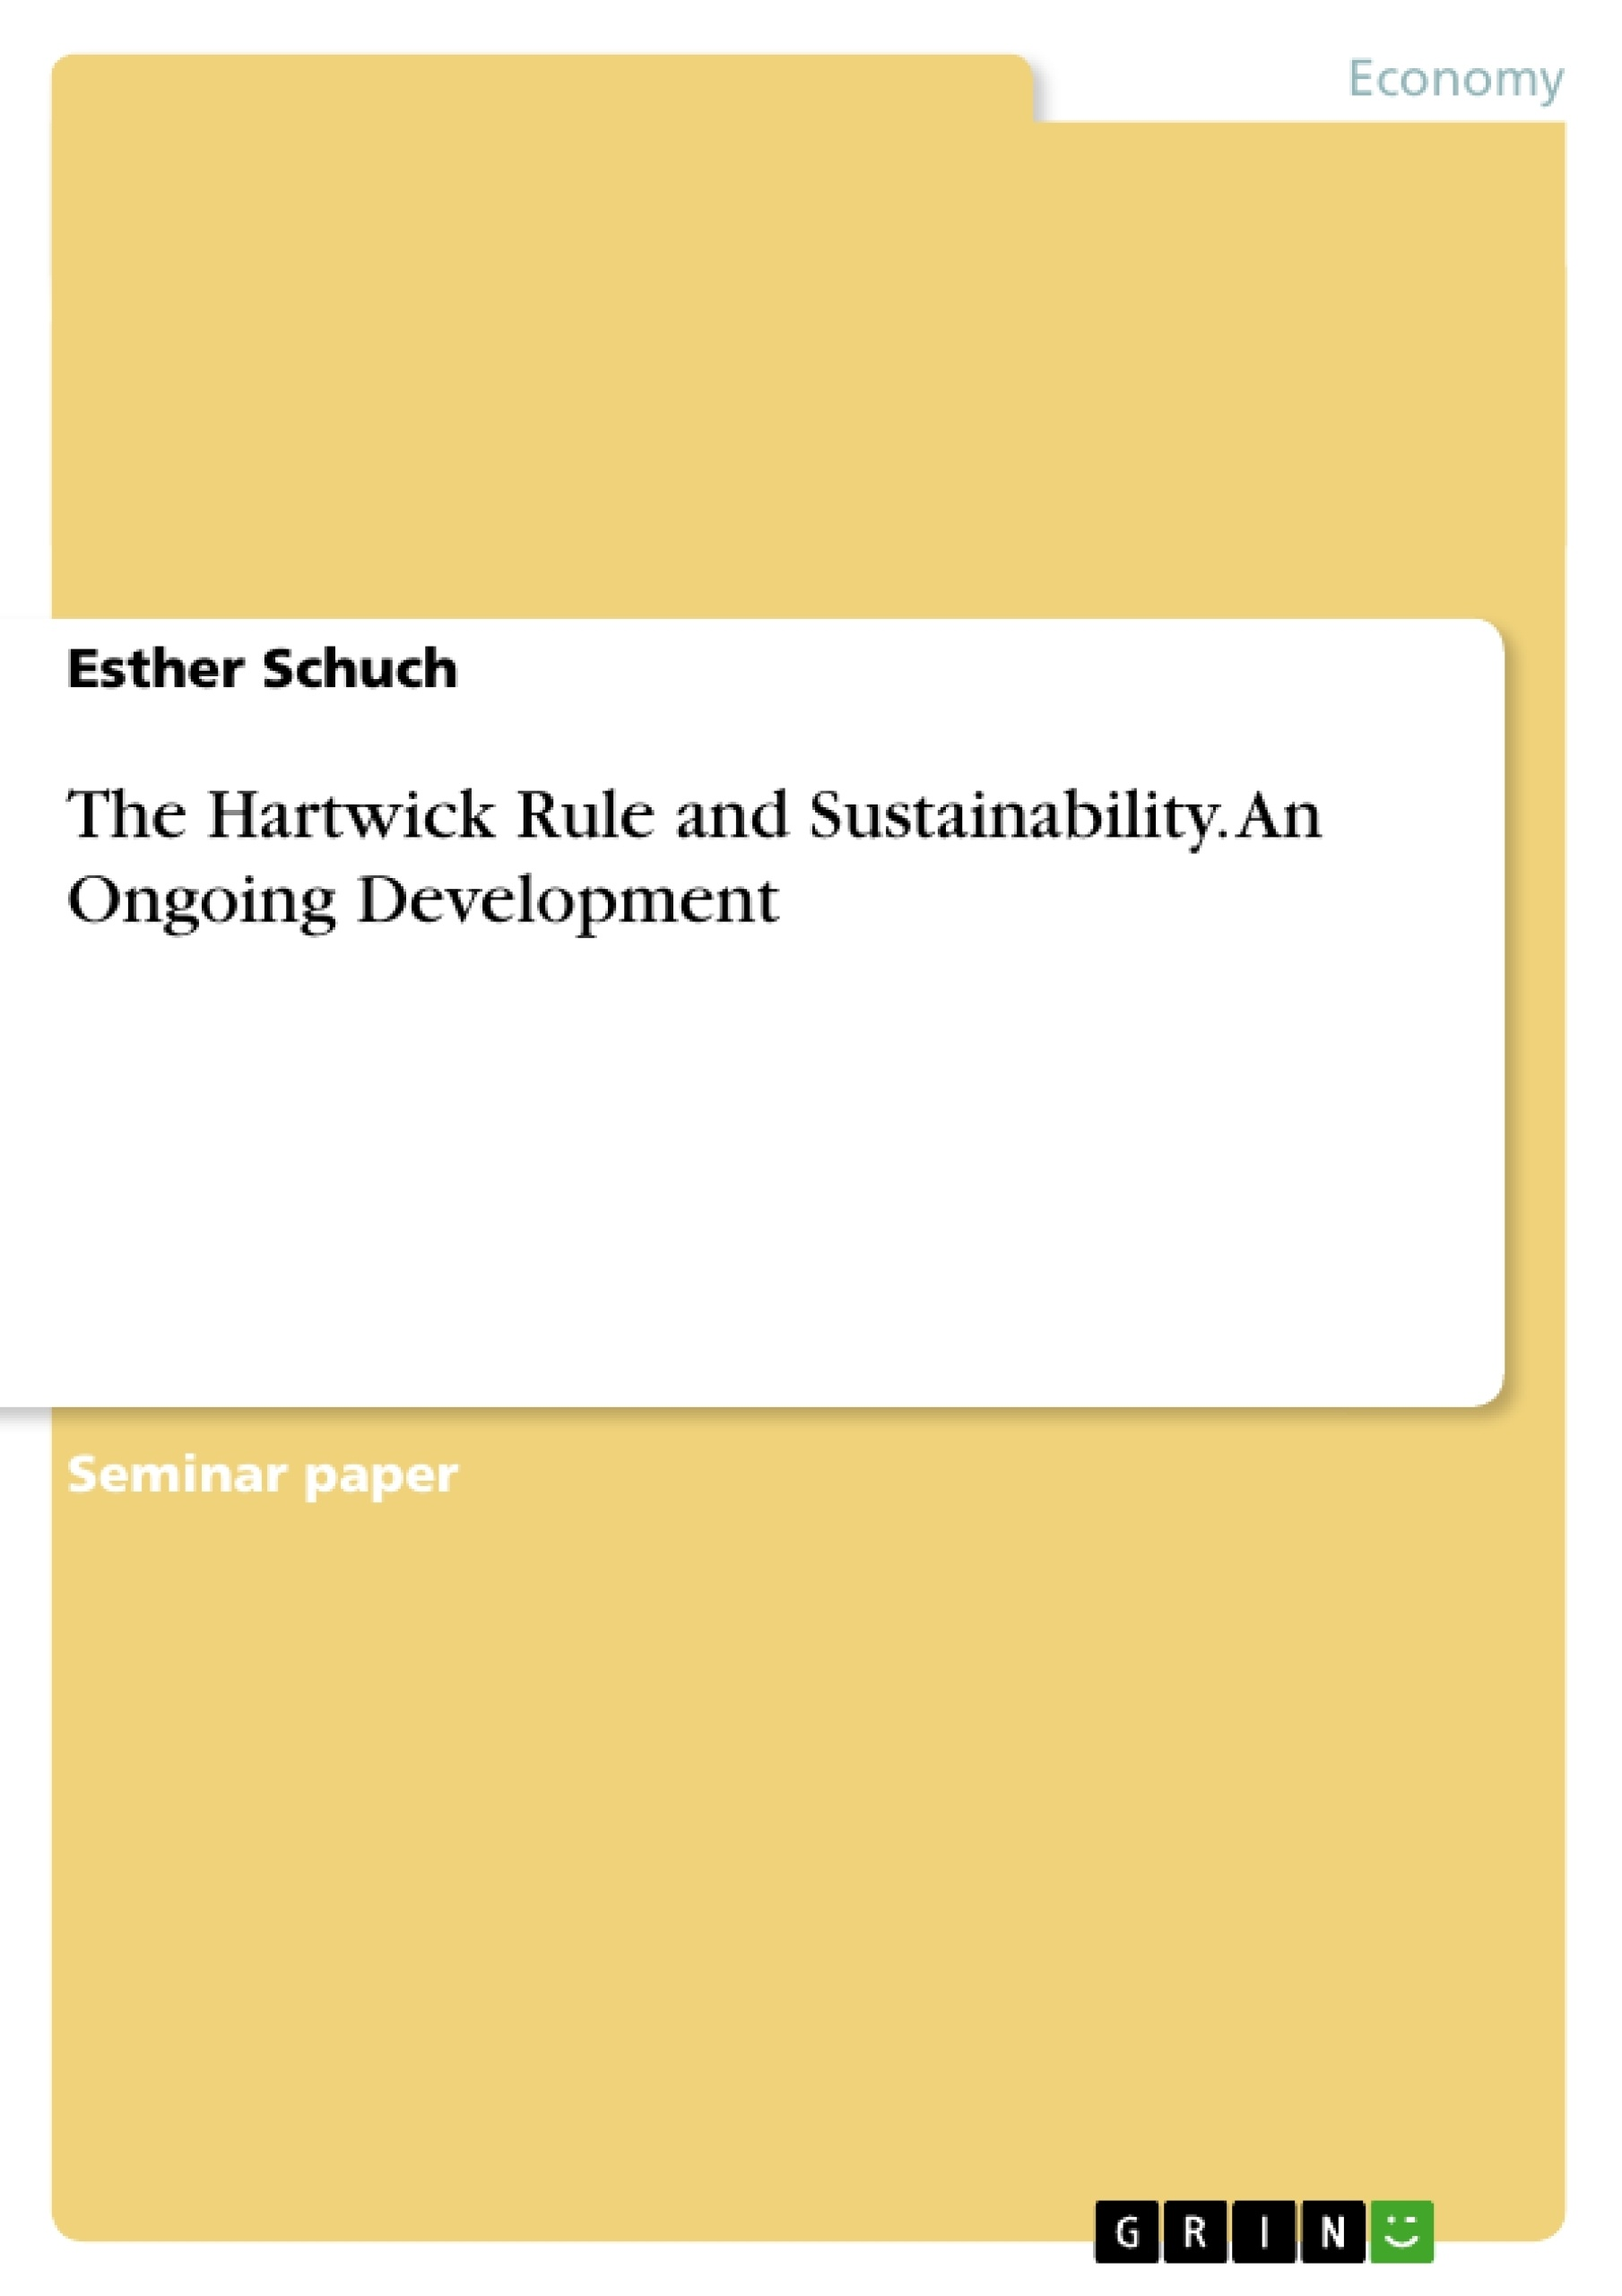 Title: The Hartwick Rule and Sustainability. An Ongoing Development